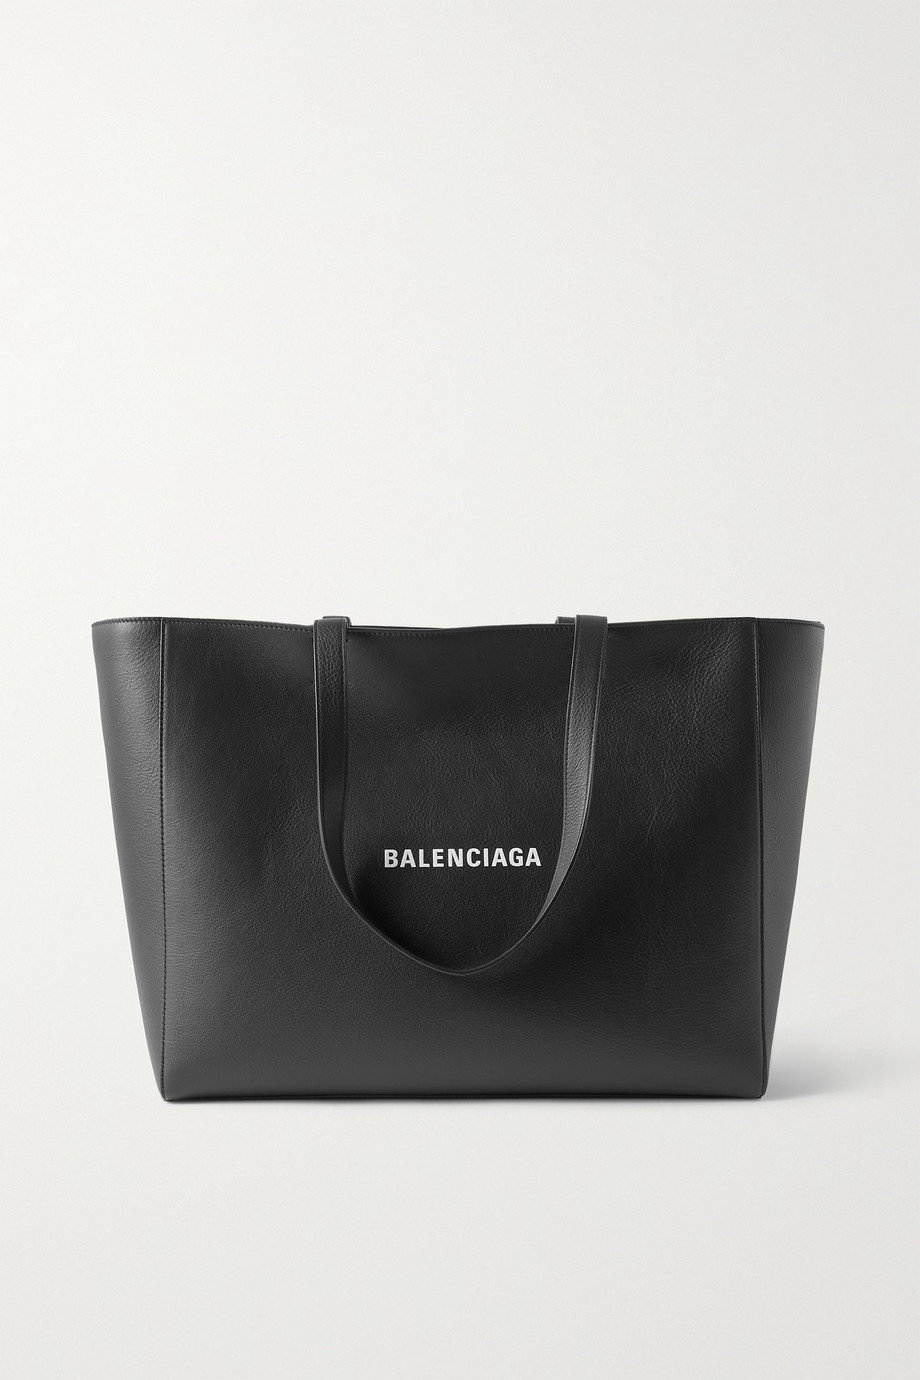 Balenciaga Everyday printed leather tote